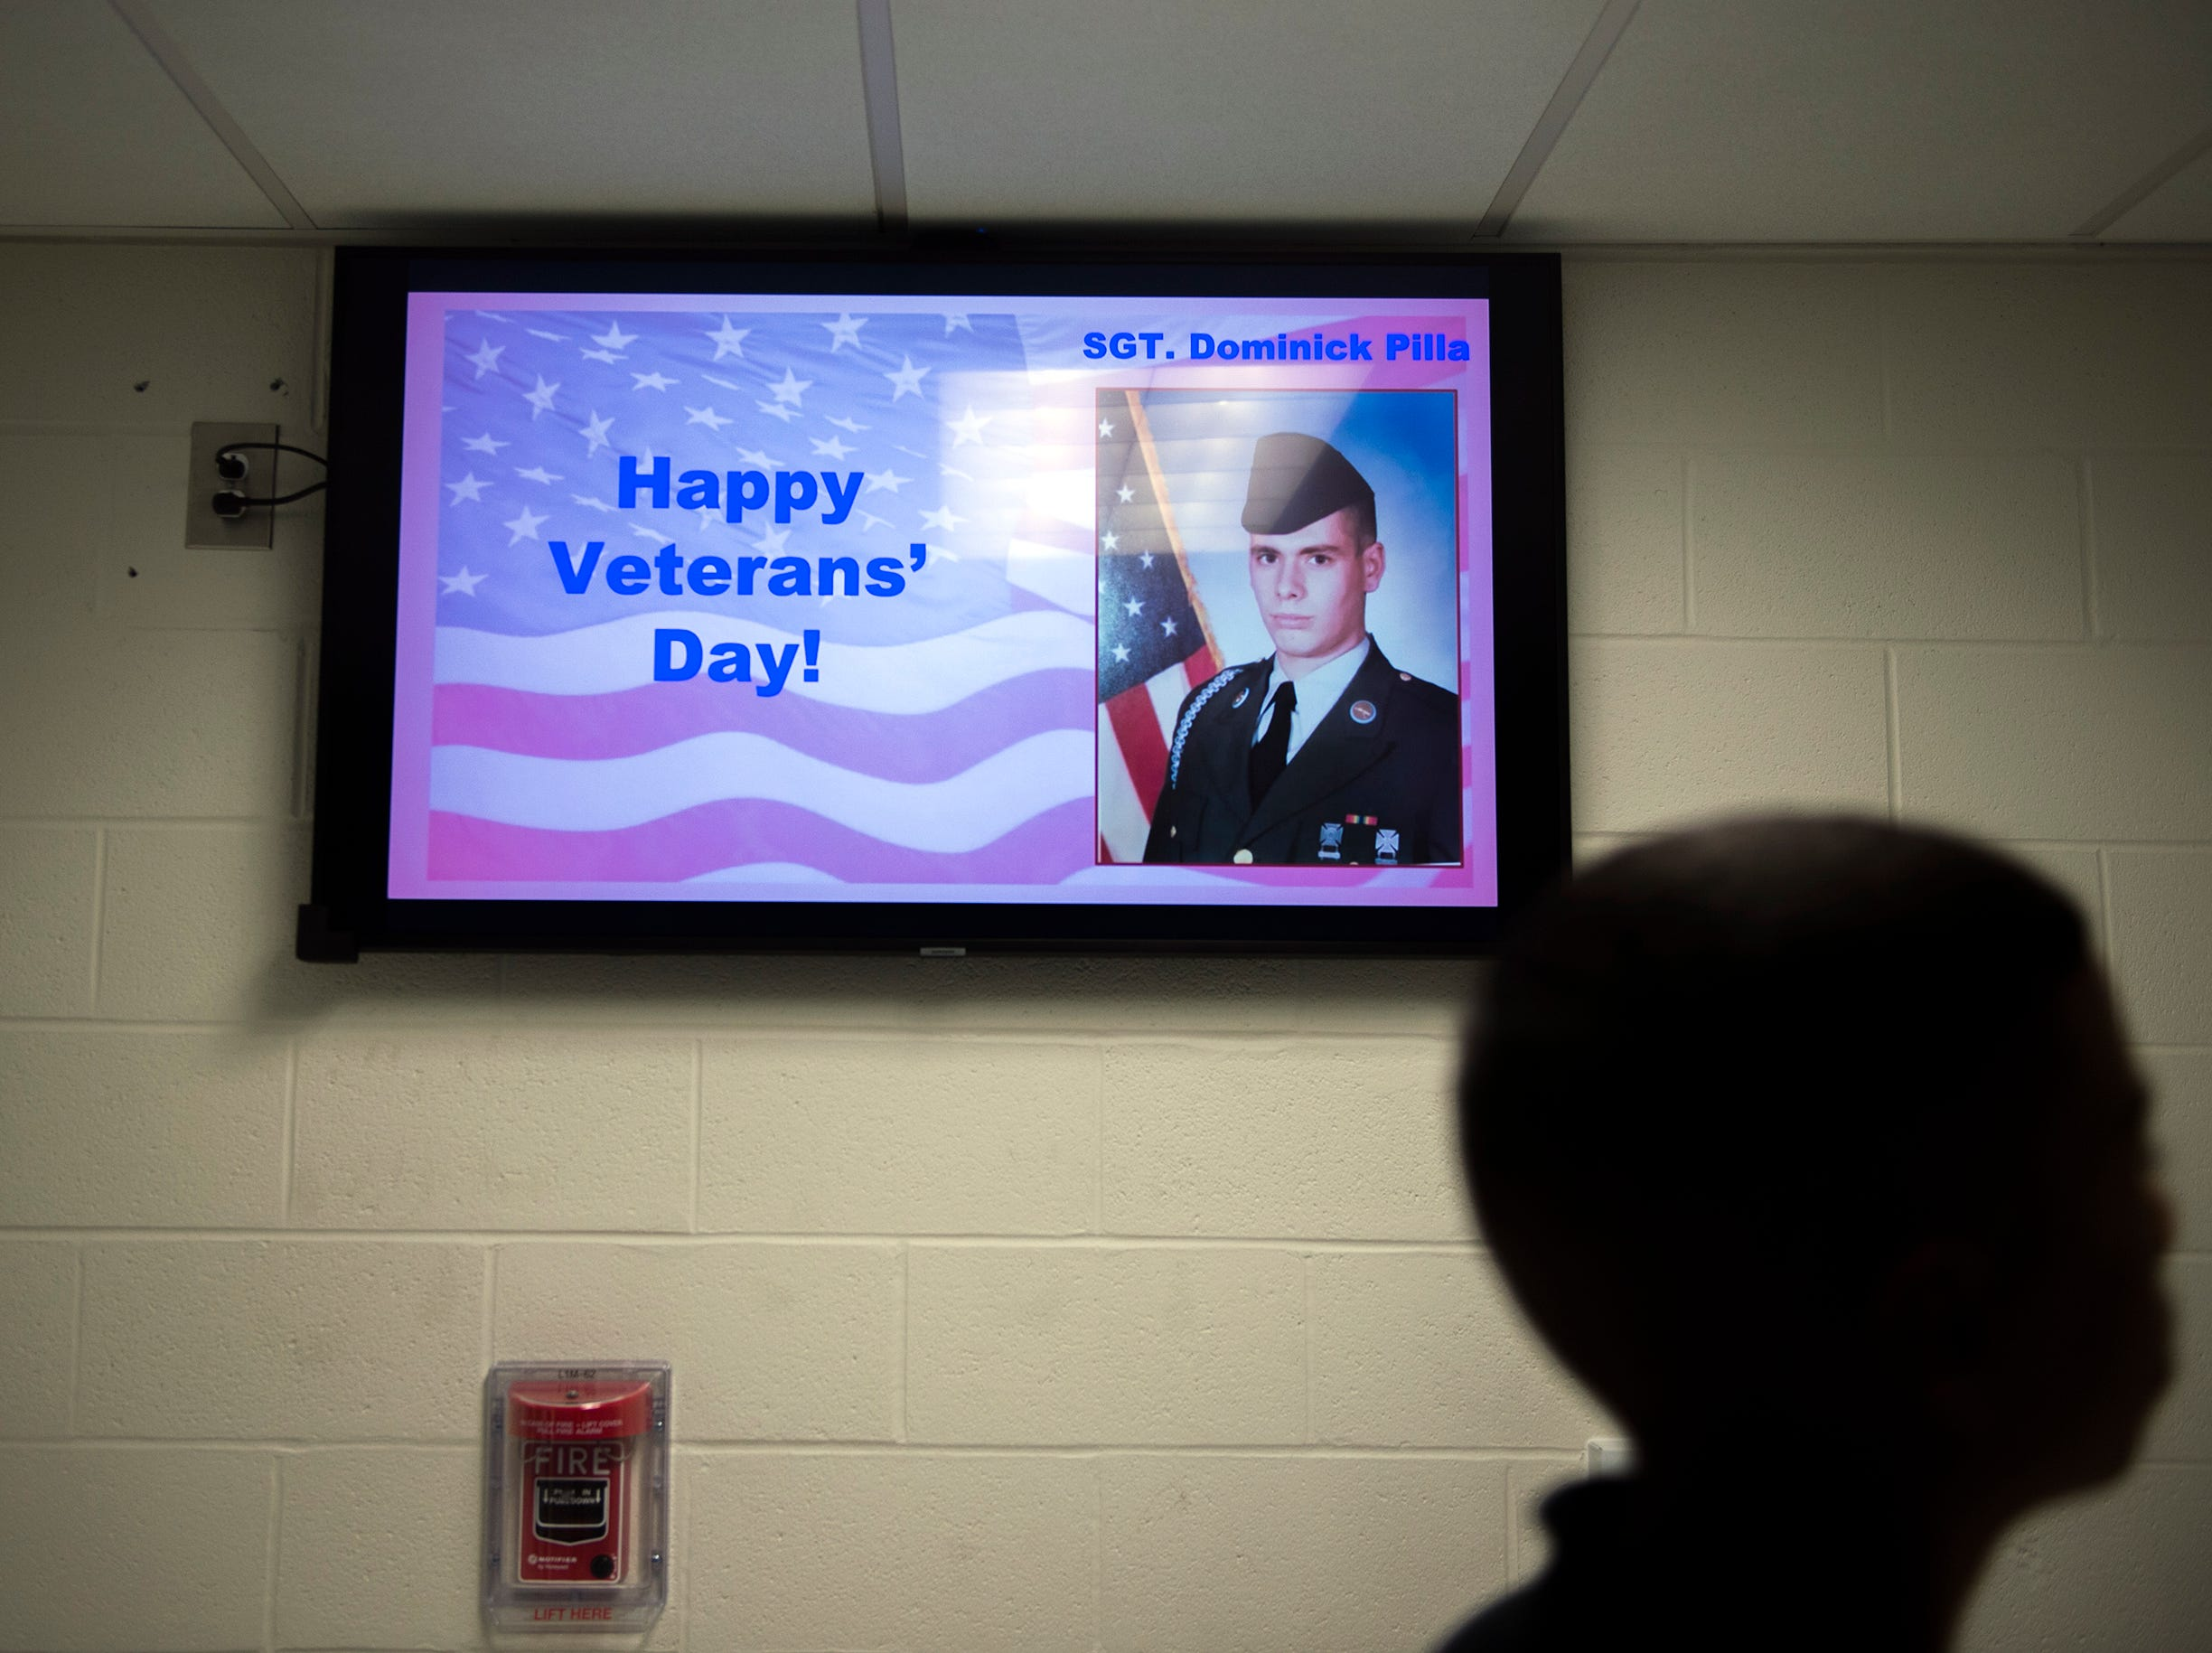 A television screen in the hallway honors Veterans Day with an image of Sgt. Dominick Pilla Monday, Nov. 5, 2018 at Lincoln Avenue School in Vineland, N.J.